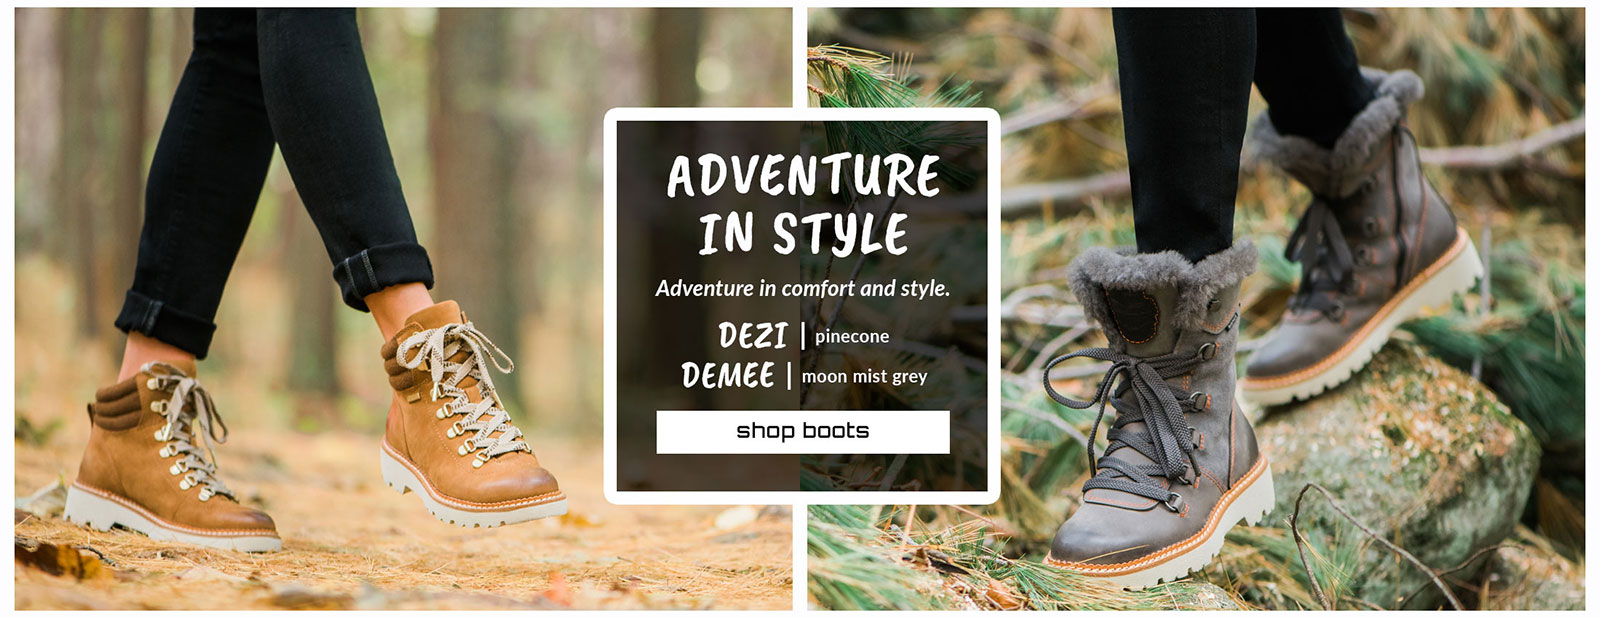 Adventure in style. Adventure in comfort and style. Featured style: Dezi Boot in pinecone, Demee boot in moon mist grey. Shop Boots.